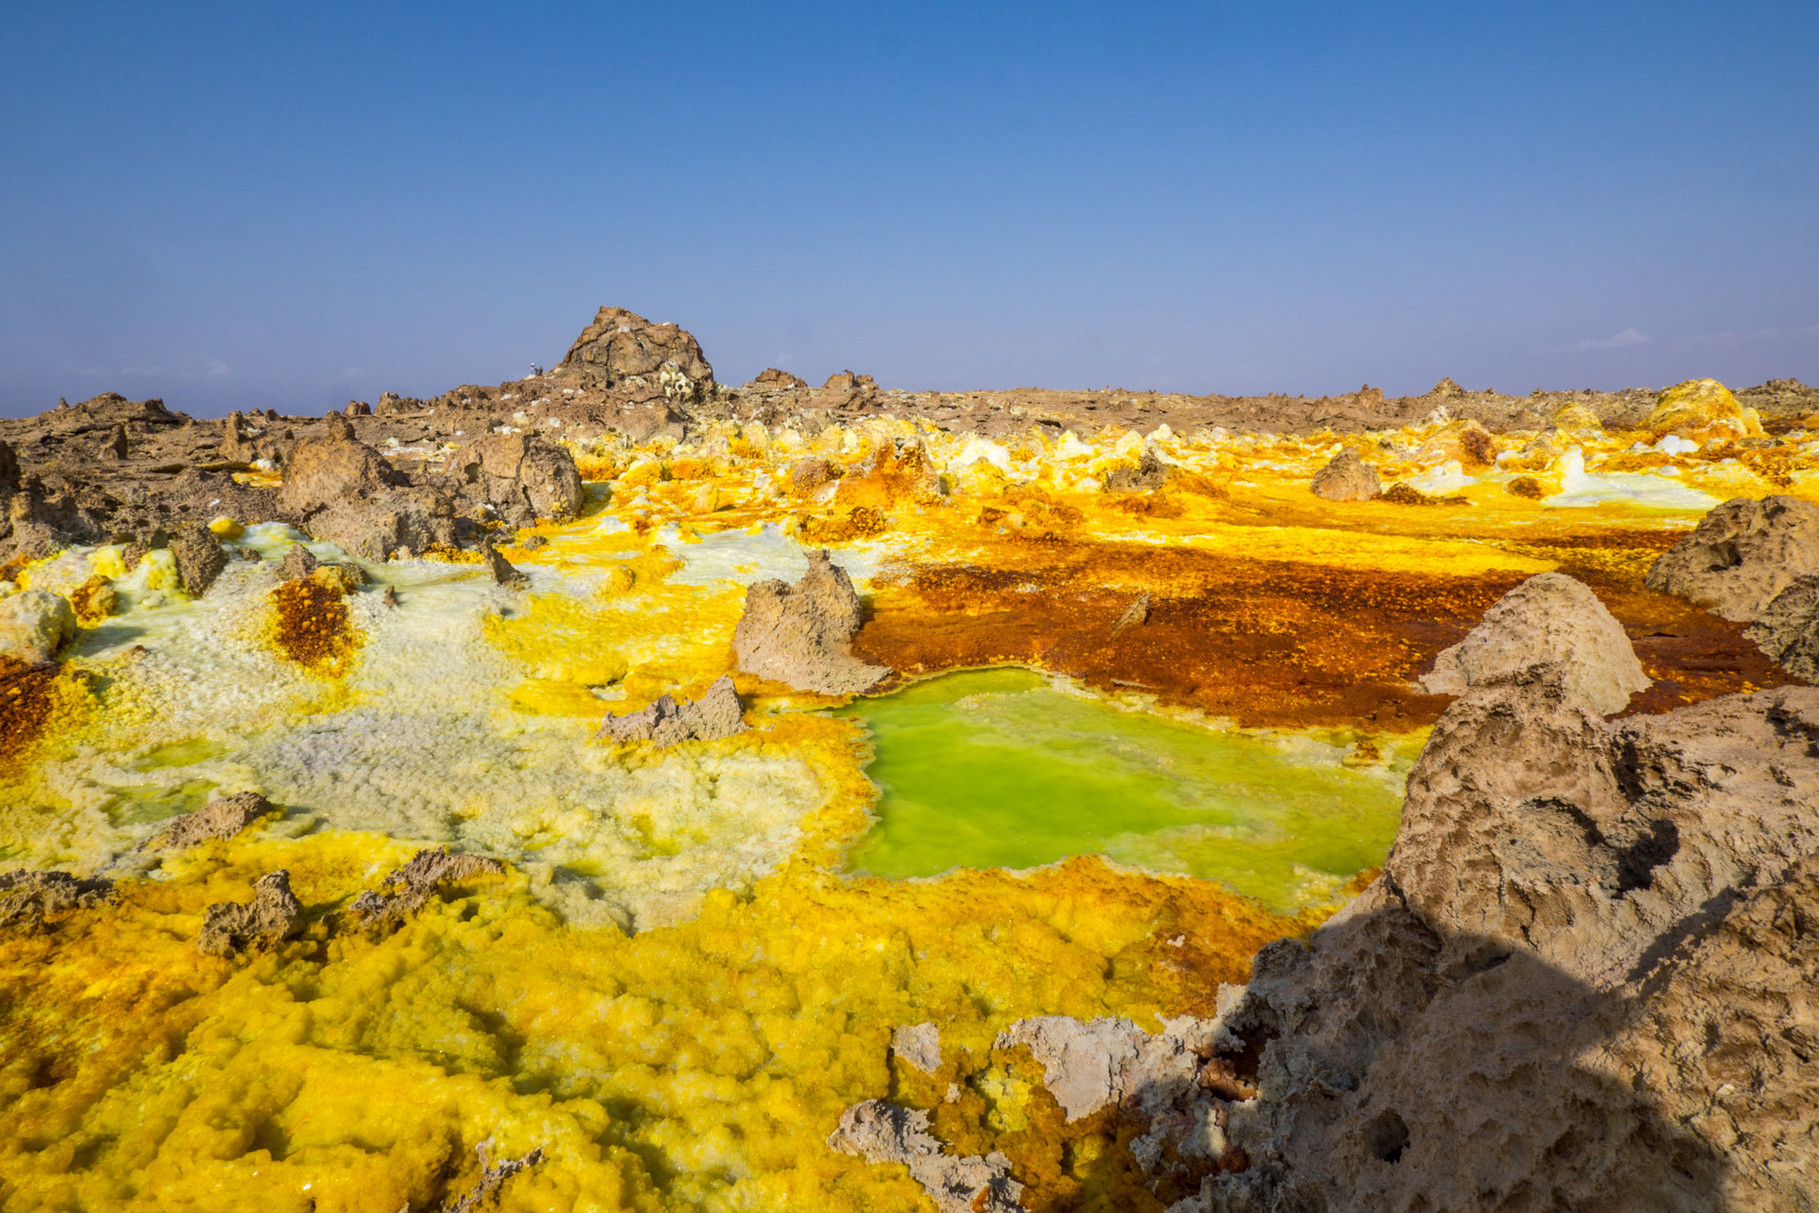 Dallol is a volcanic explosion crater in the Danakil Depression, northeast of the Erta Ale Range in Ethiopia. Numerous hot springs are discharging brine (solution of salt in water) and acidic liquid here. Widespread are small, temporary geysers which are